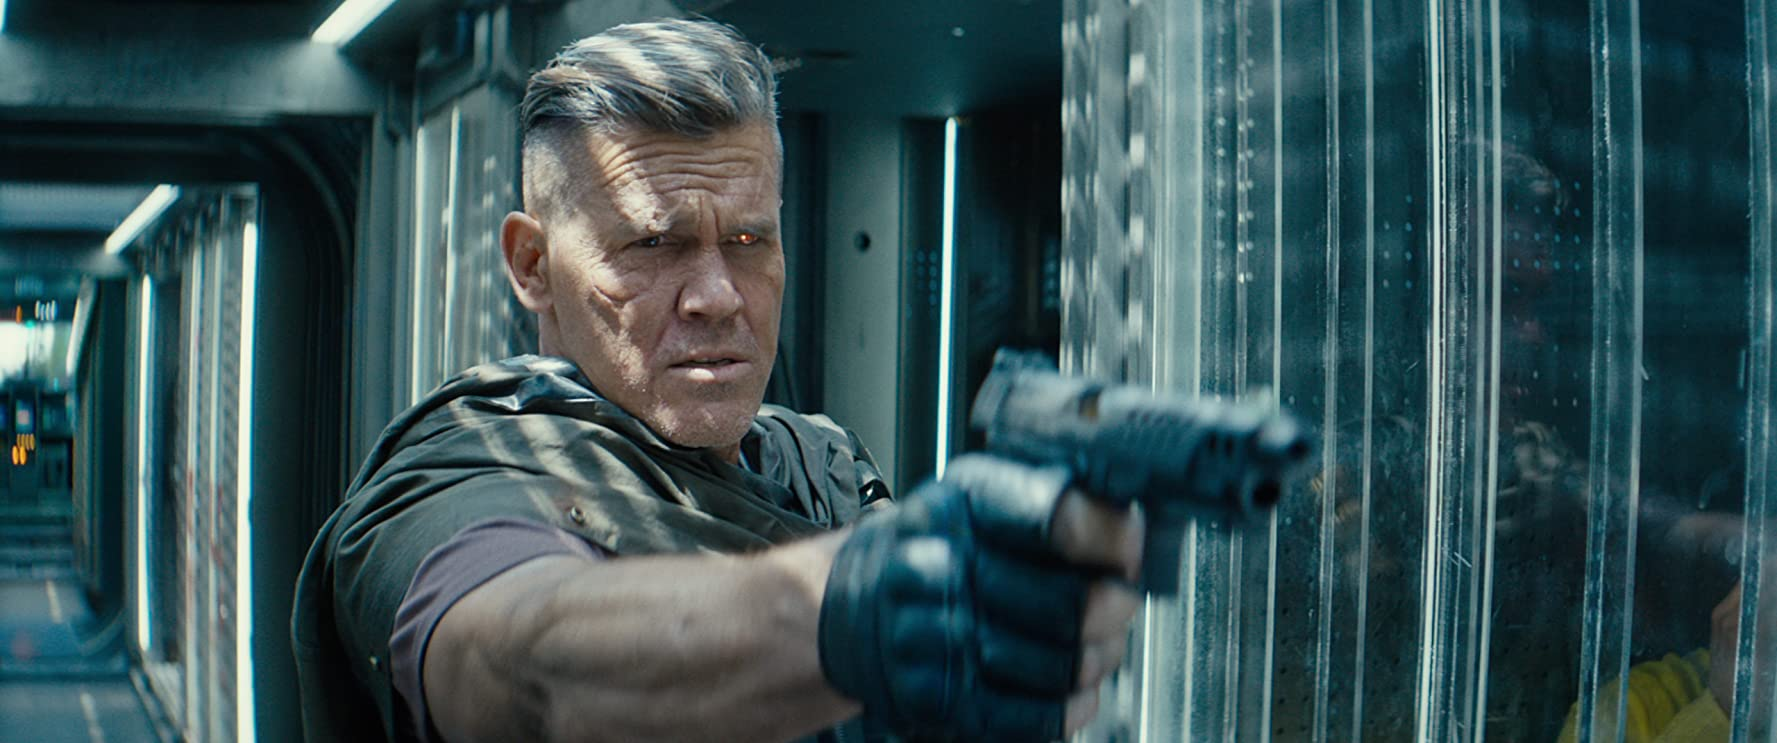 Josh Brolin in Deadpool 2 (2018)